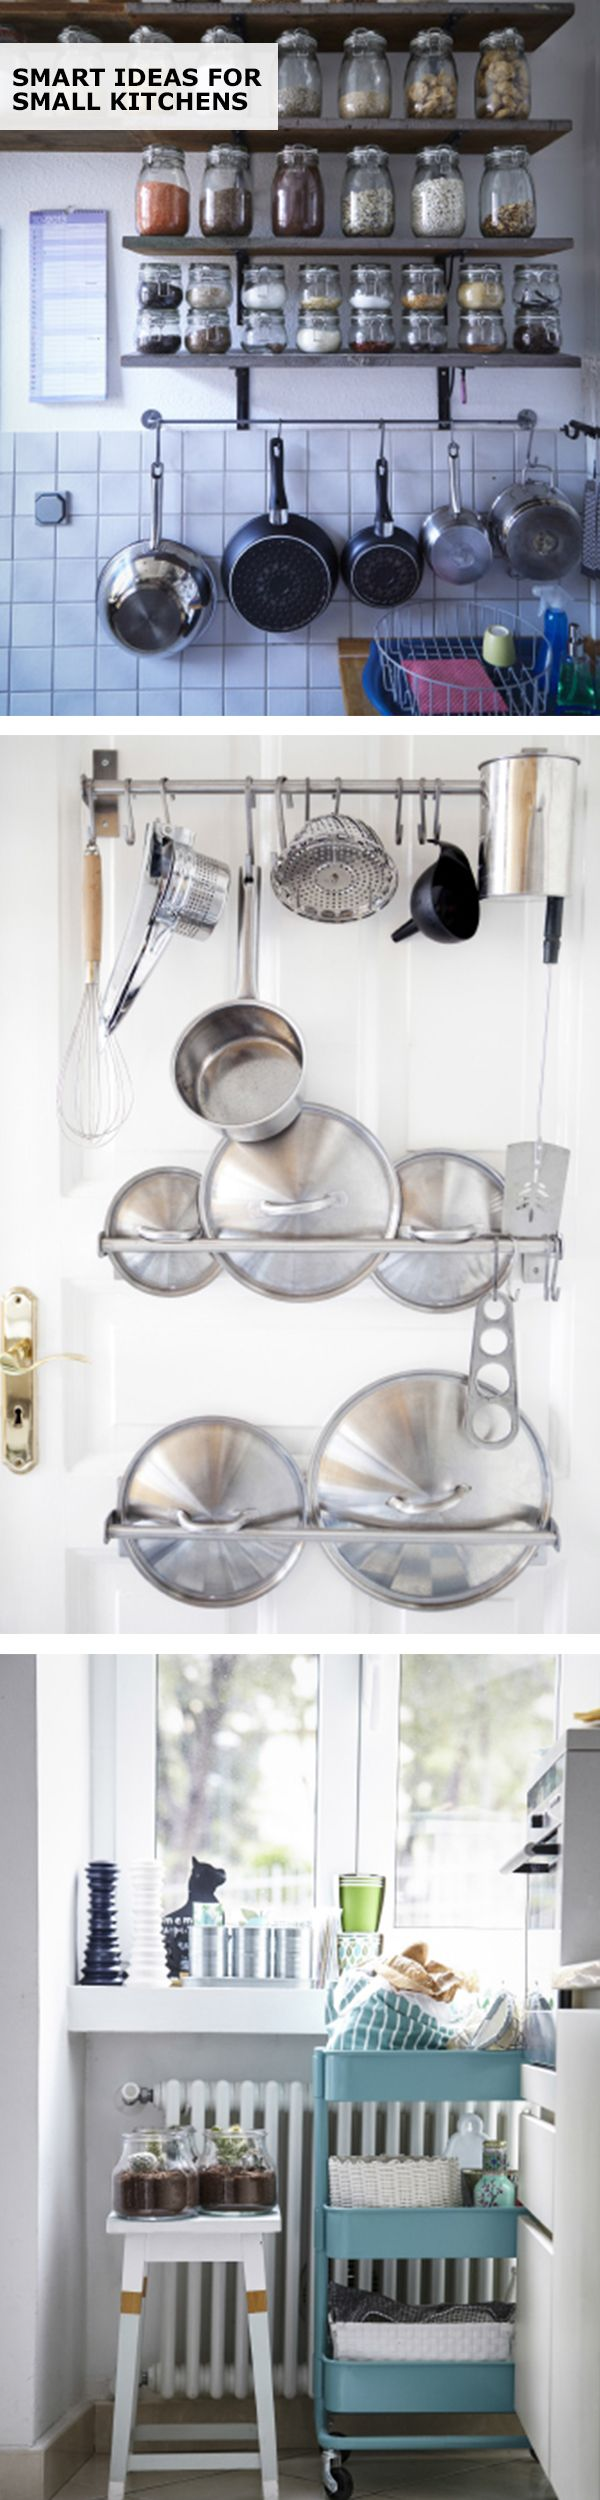 With a little planning and creativity, you can transform a small kitchen from a challenging space into a one you'll enjoy spending more time in. From storage to seating, find your small kitchen inspiration with this IKEA roundup of real-home examples.